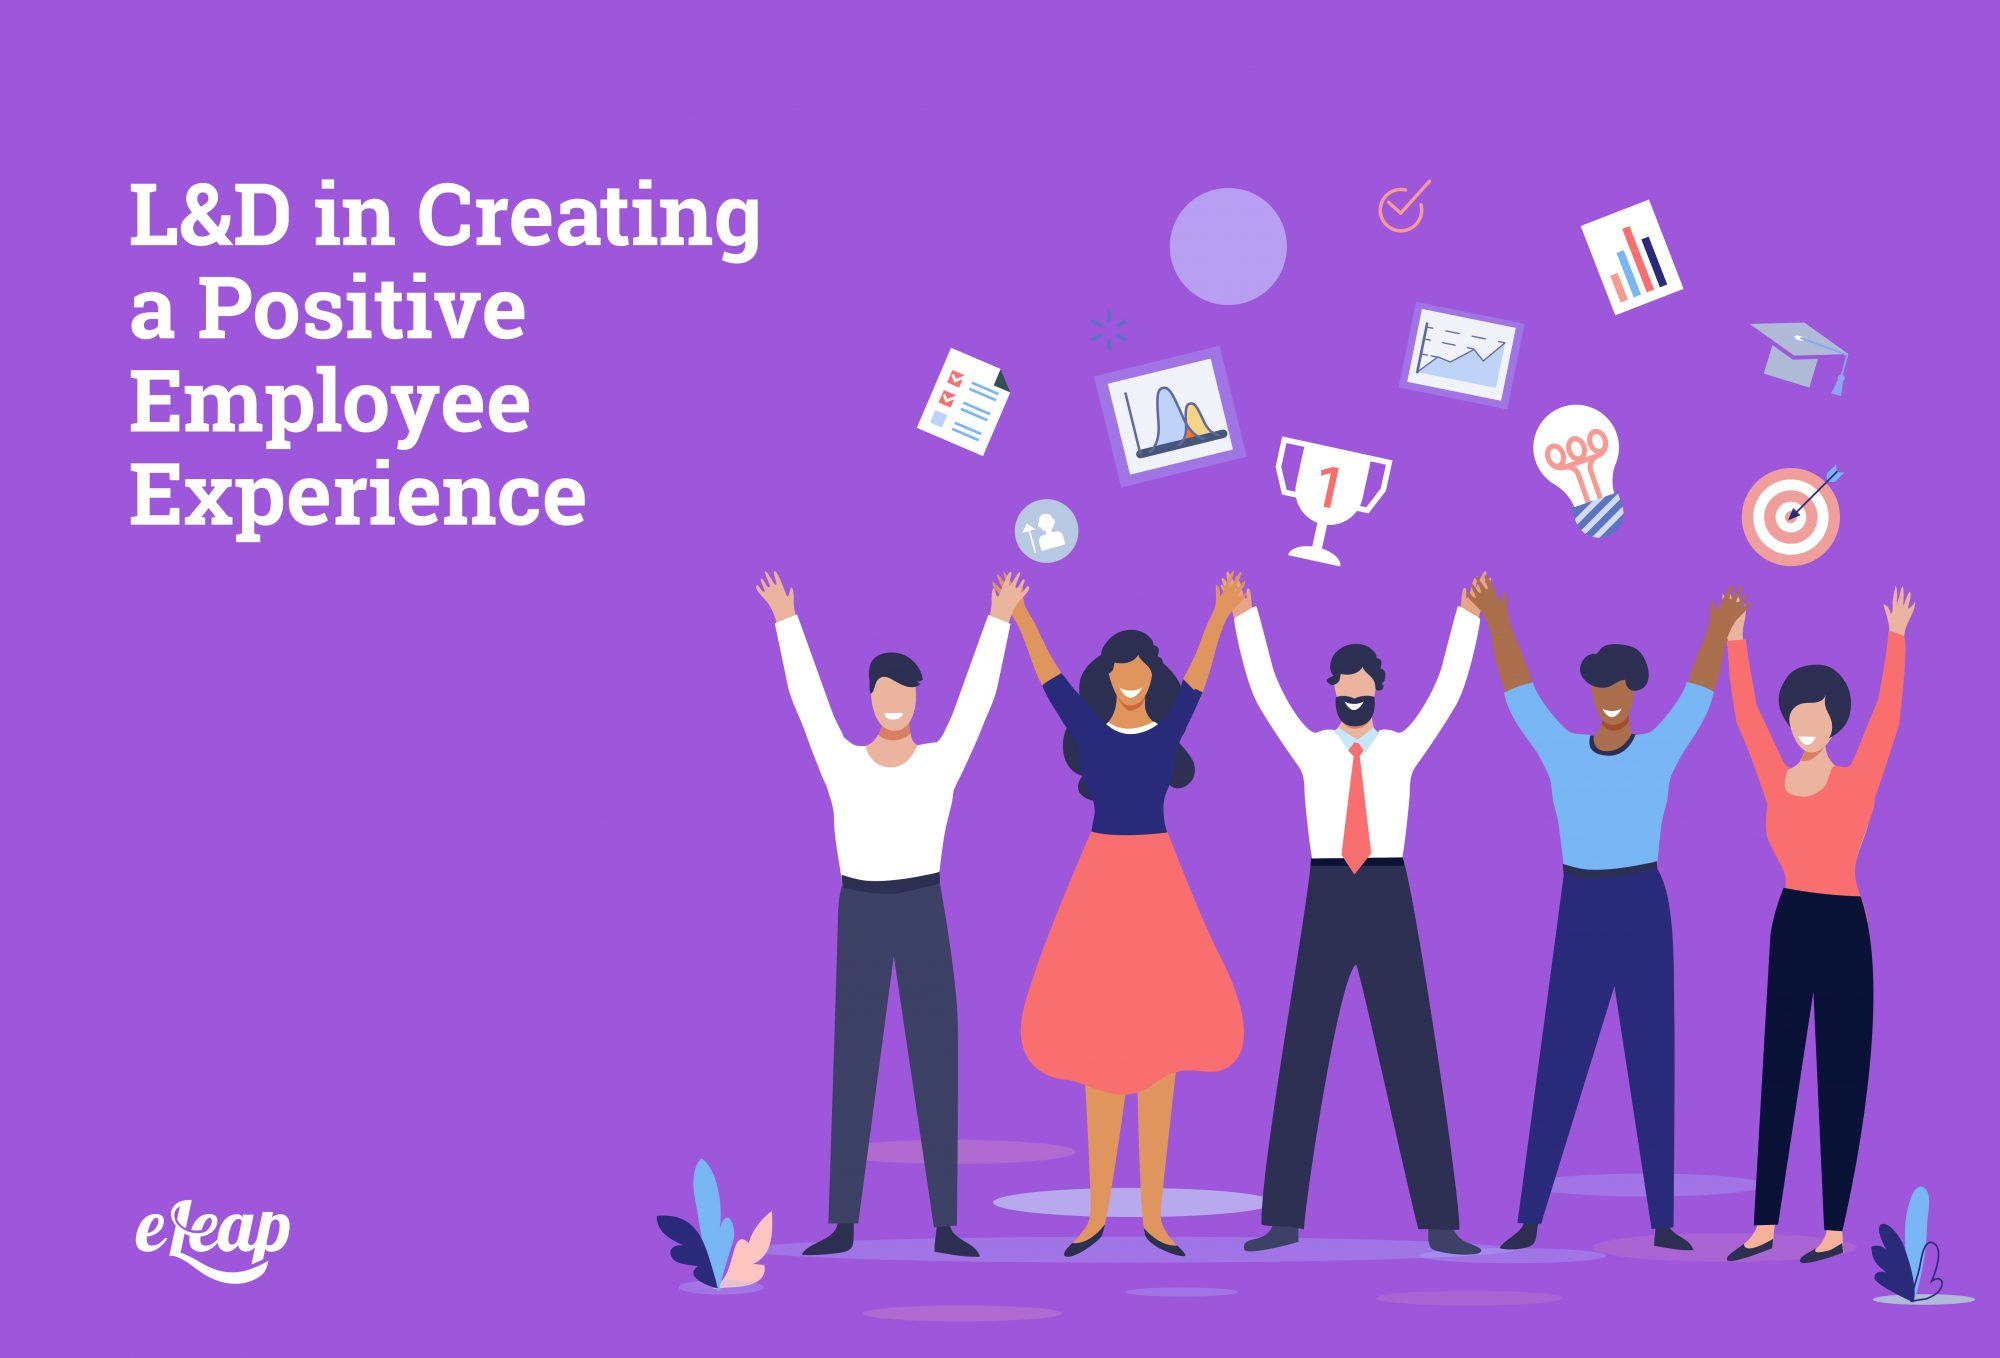 L&D in Creating a Positive Employee Experience